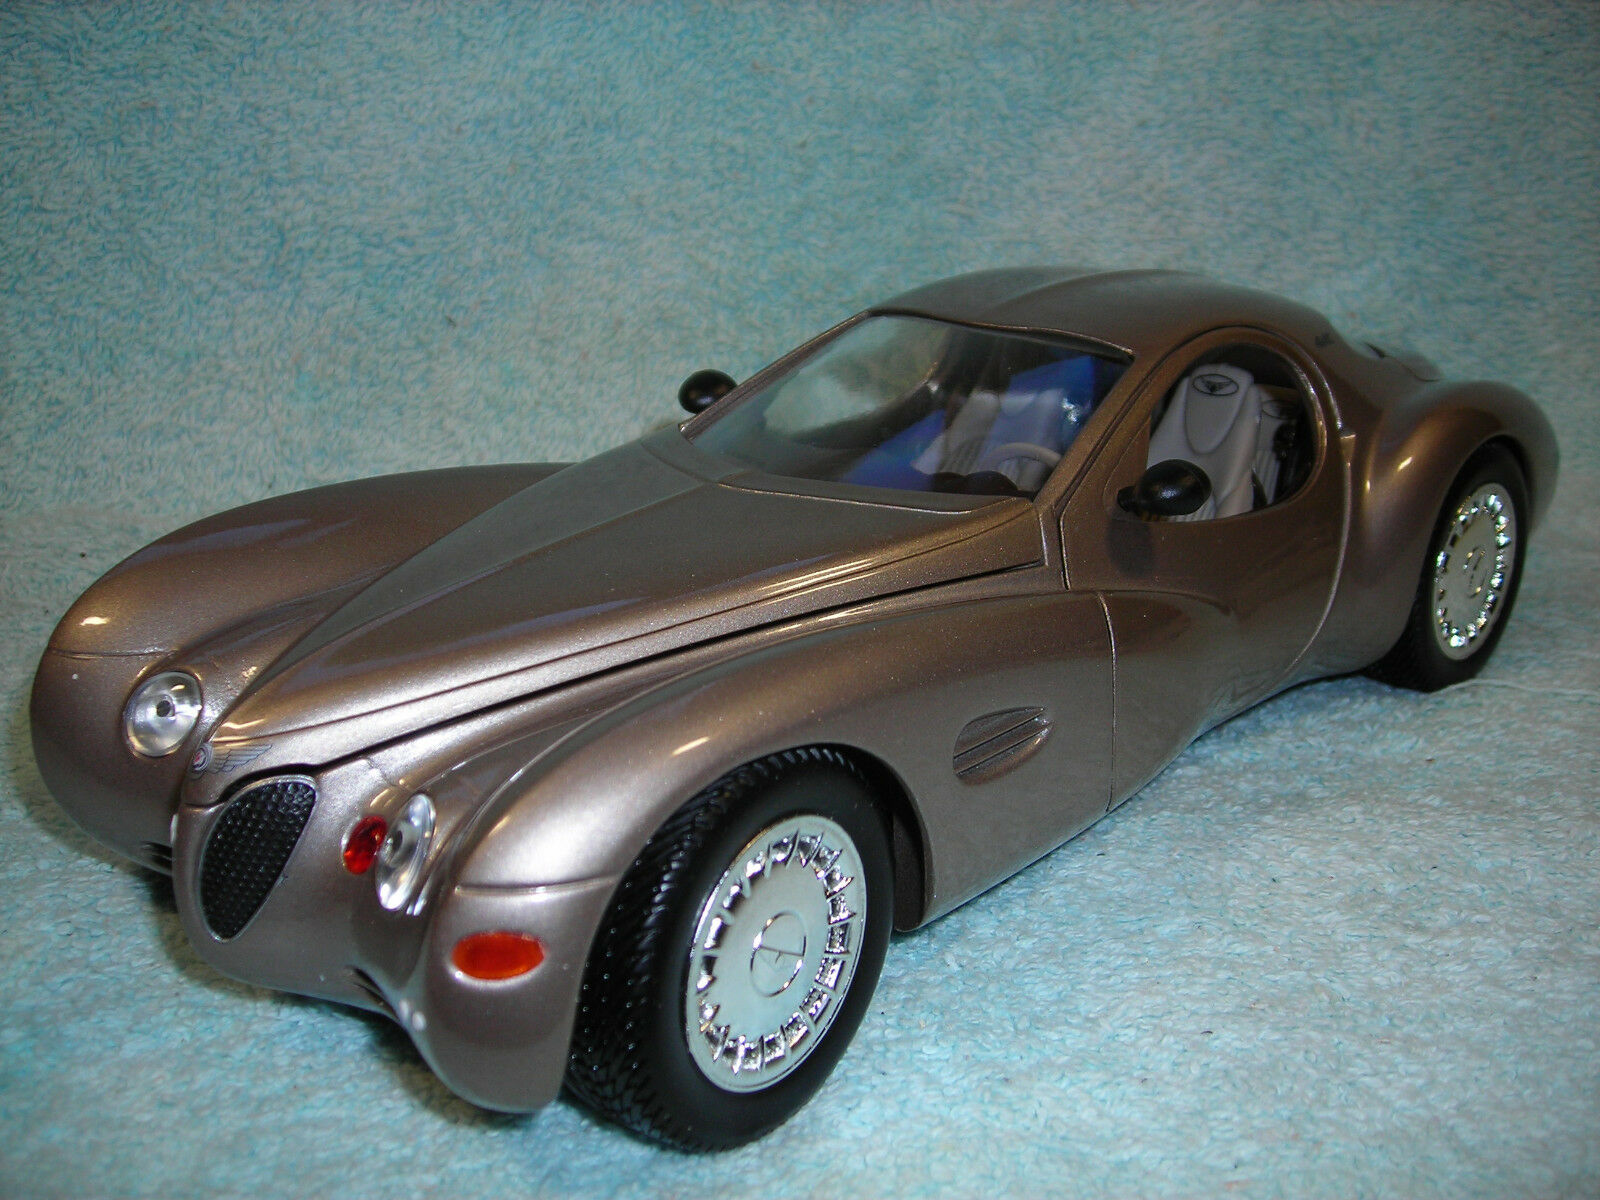 1 18 SCALE 1995 CHRYSLER ATLANTIC CONCEPT IN CHAMPAGNE METALLIC BY GUILOY.